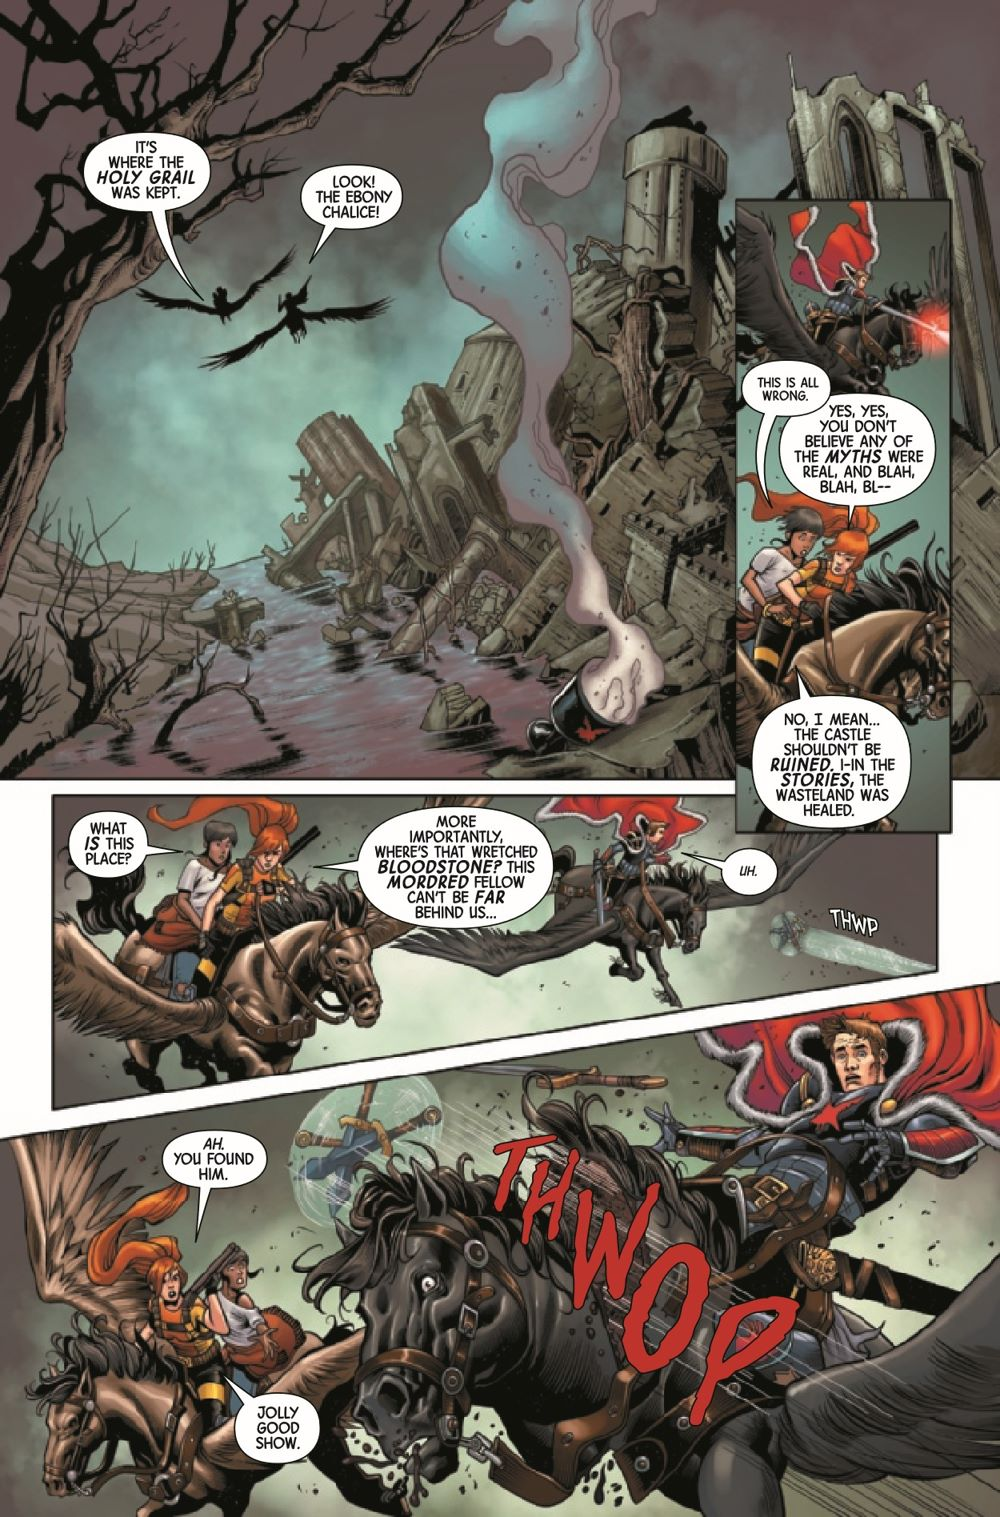 BLKKNGHTCURSE2021003_Preview-3 ComicList Previews: BLACK KNIGHT CURSE OF THE EBONY BLADE #3 (OF 5)